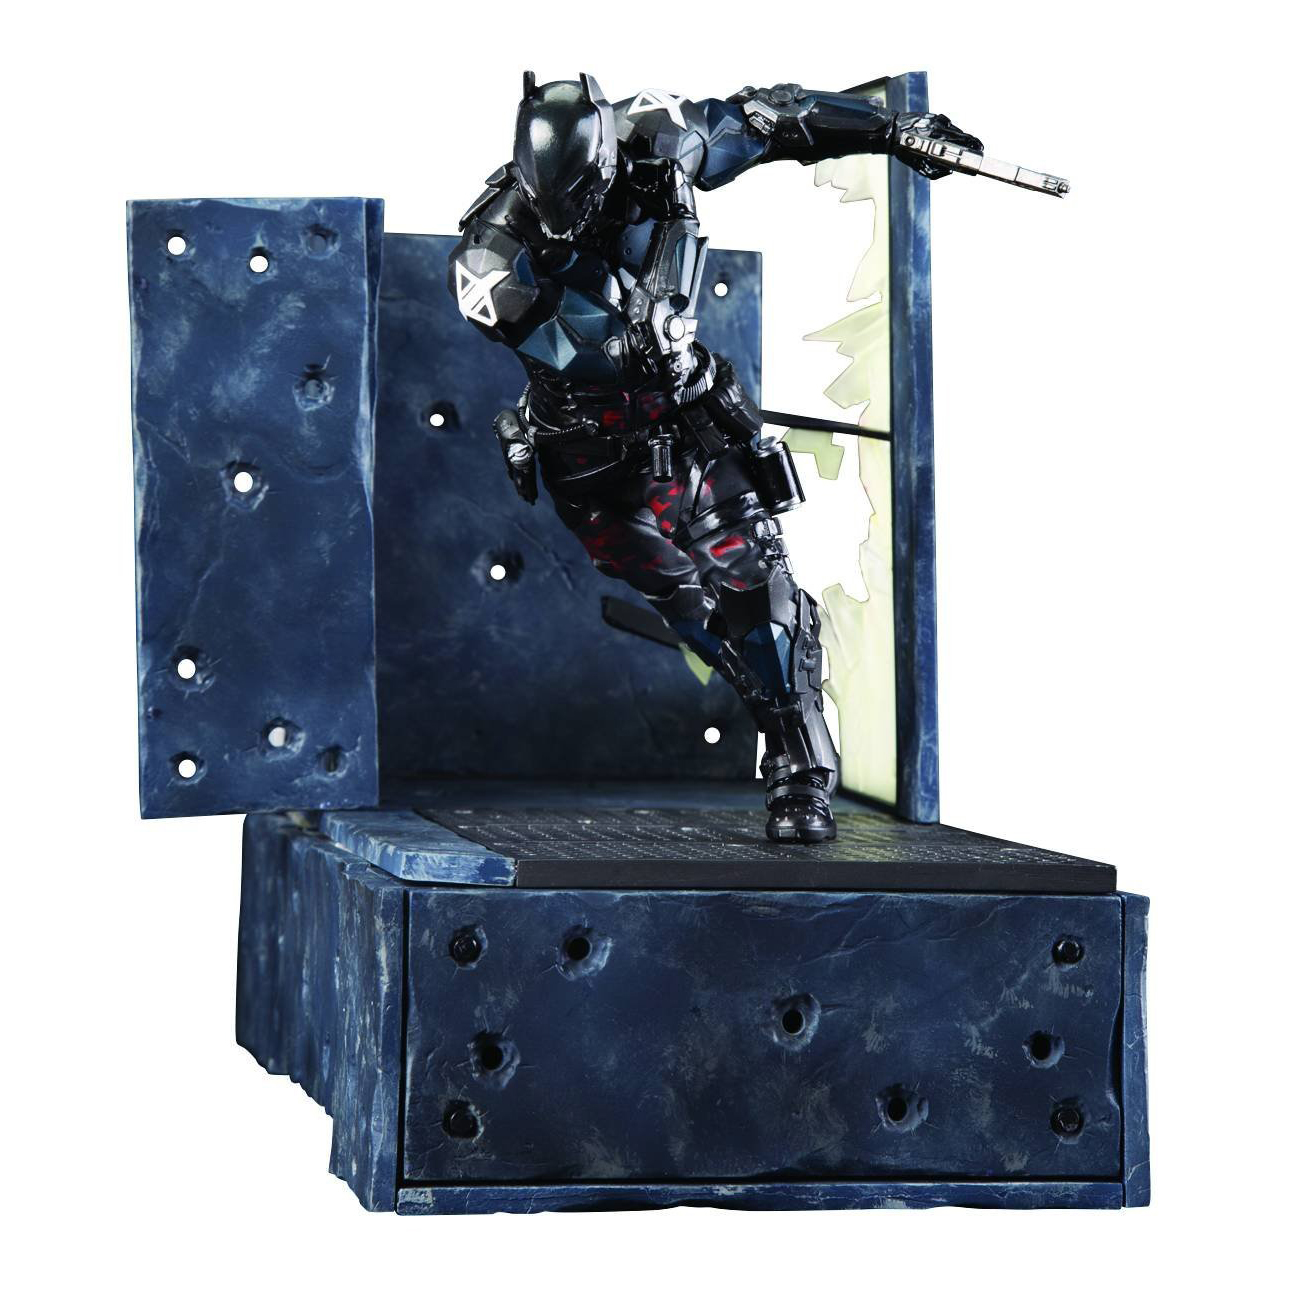 Arkham Knight ArtFX Statue from DC Comics and Kotobukiya